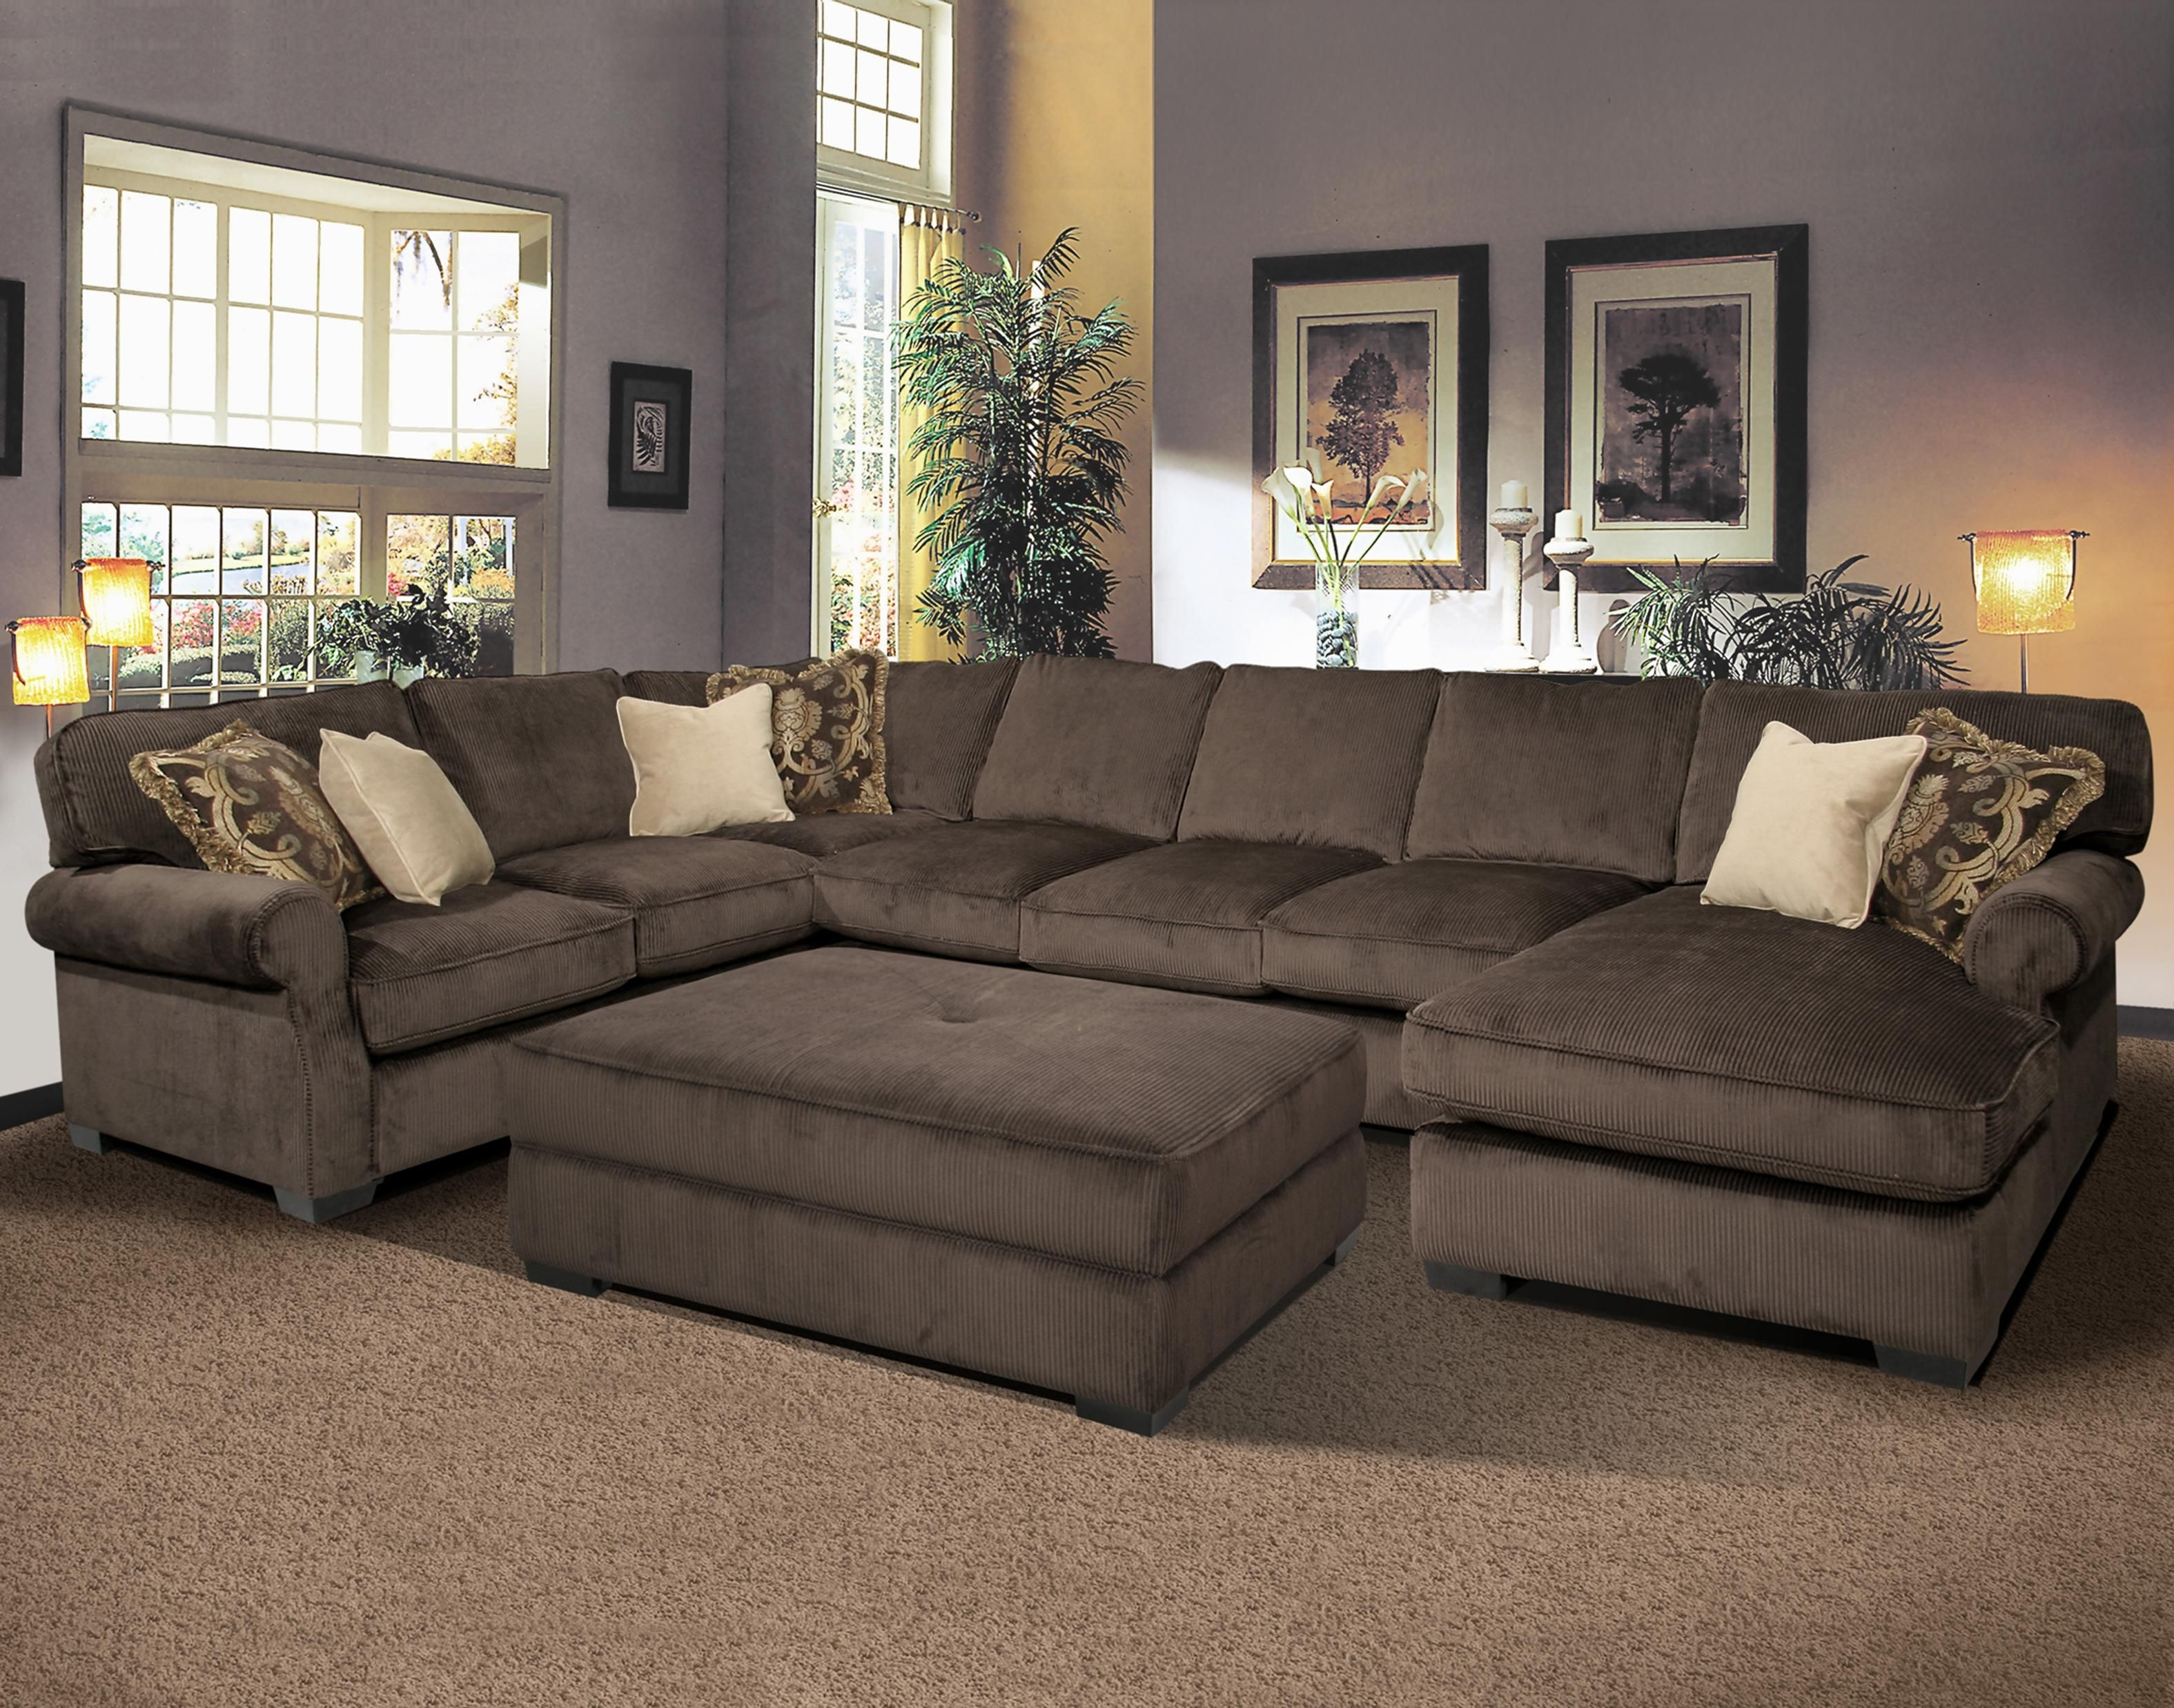 Big And Comfy Grand Island Large, 7 Seat Sectional Sofa With Right With Regard To Long Chaise Sofas (View 8 of 10)